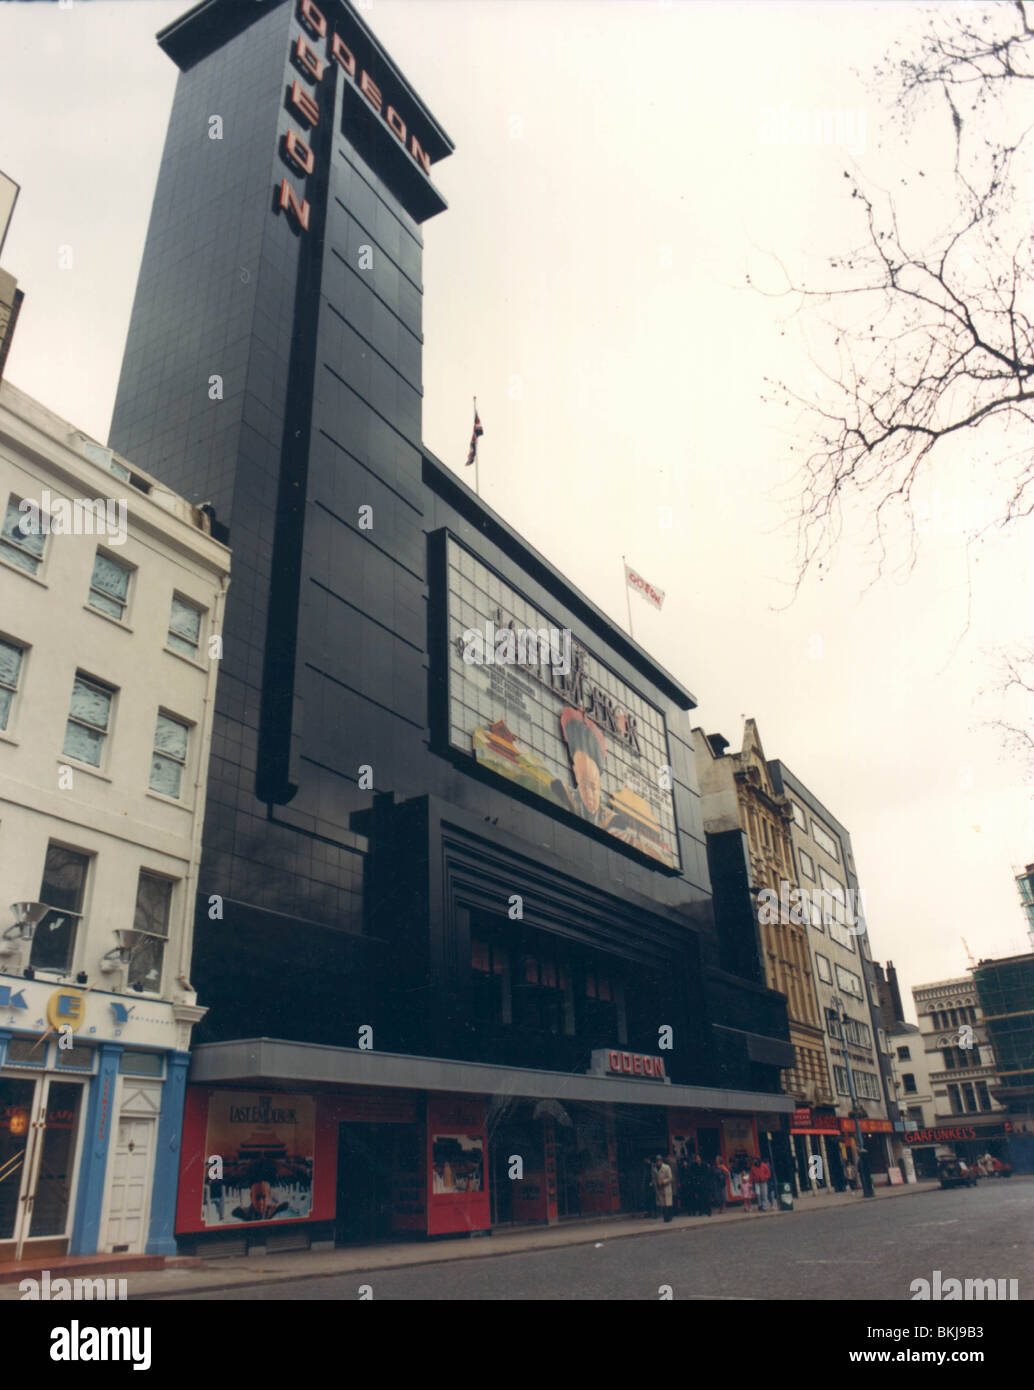 CINEMA ODEON (LEICESTER SQUARE) CNMA 006CP - Stock Image